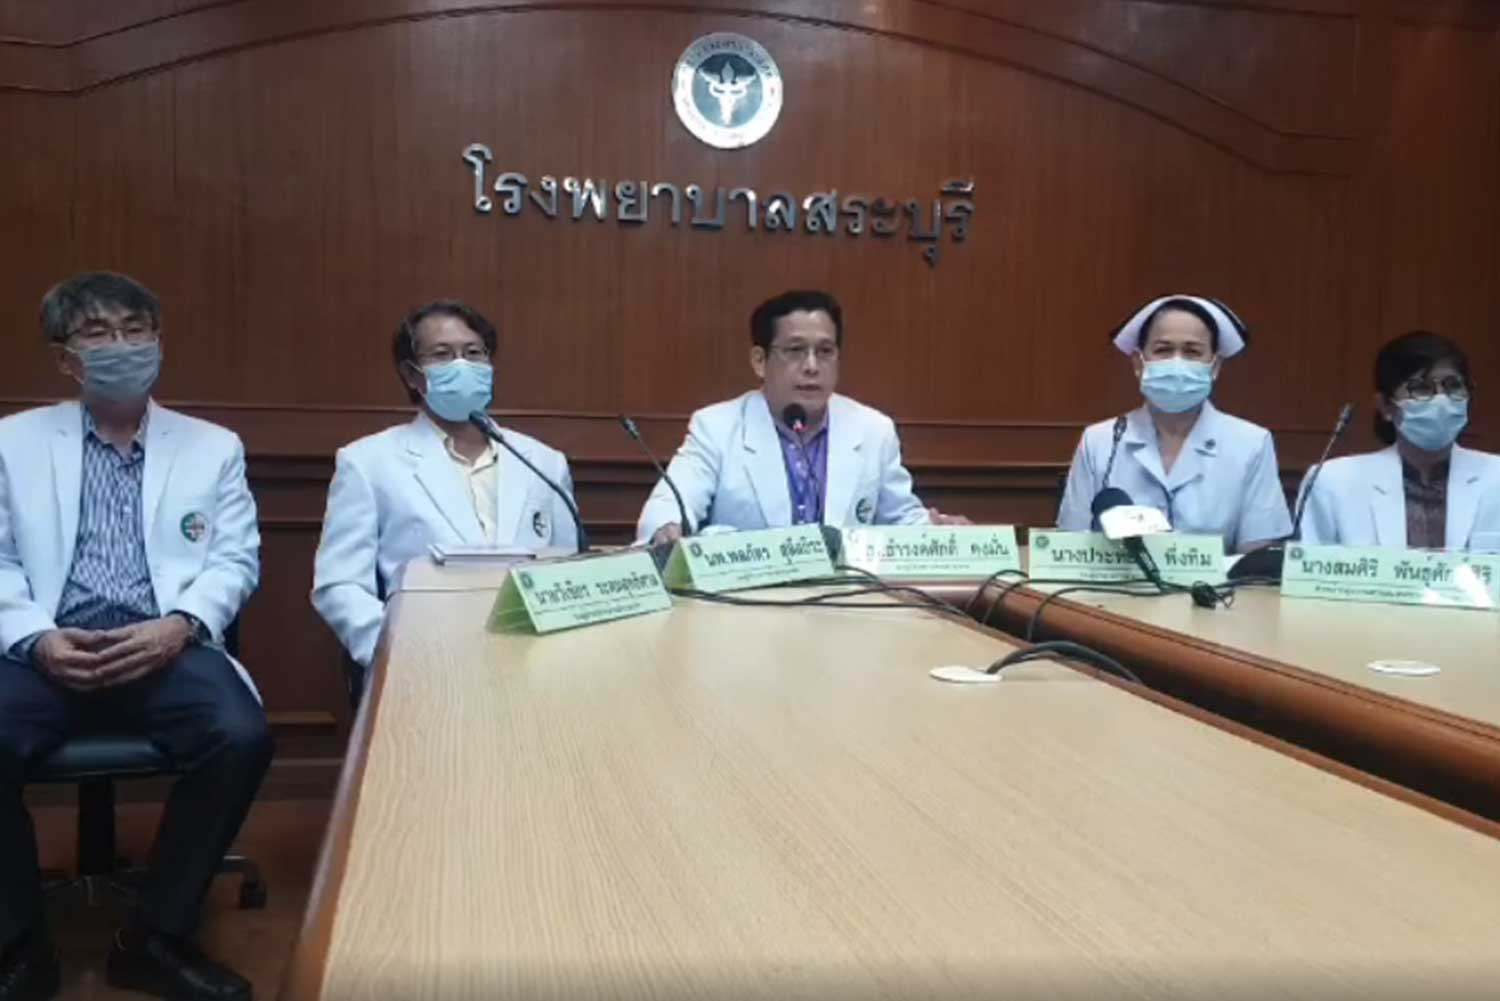 Saraburi Hospital executives hold a media conference about the ransomware attack on the hospital computer system. (Capture from TV Channel 3)